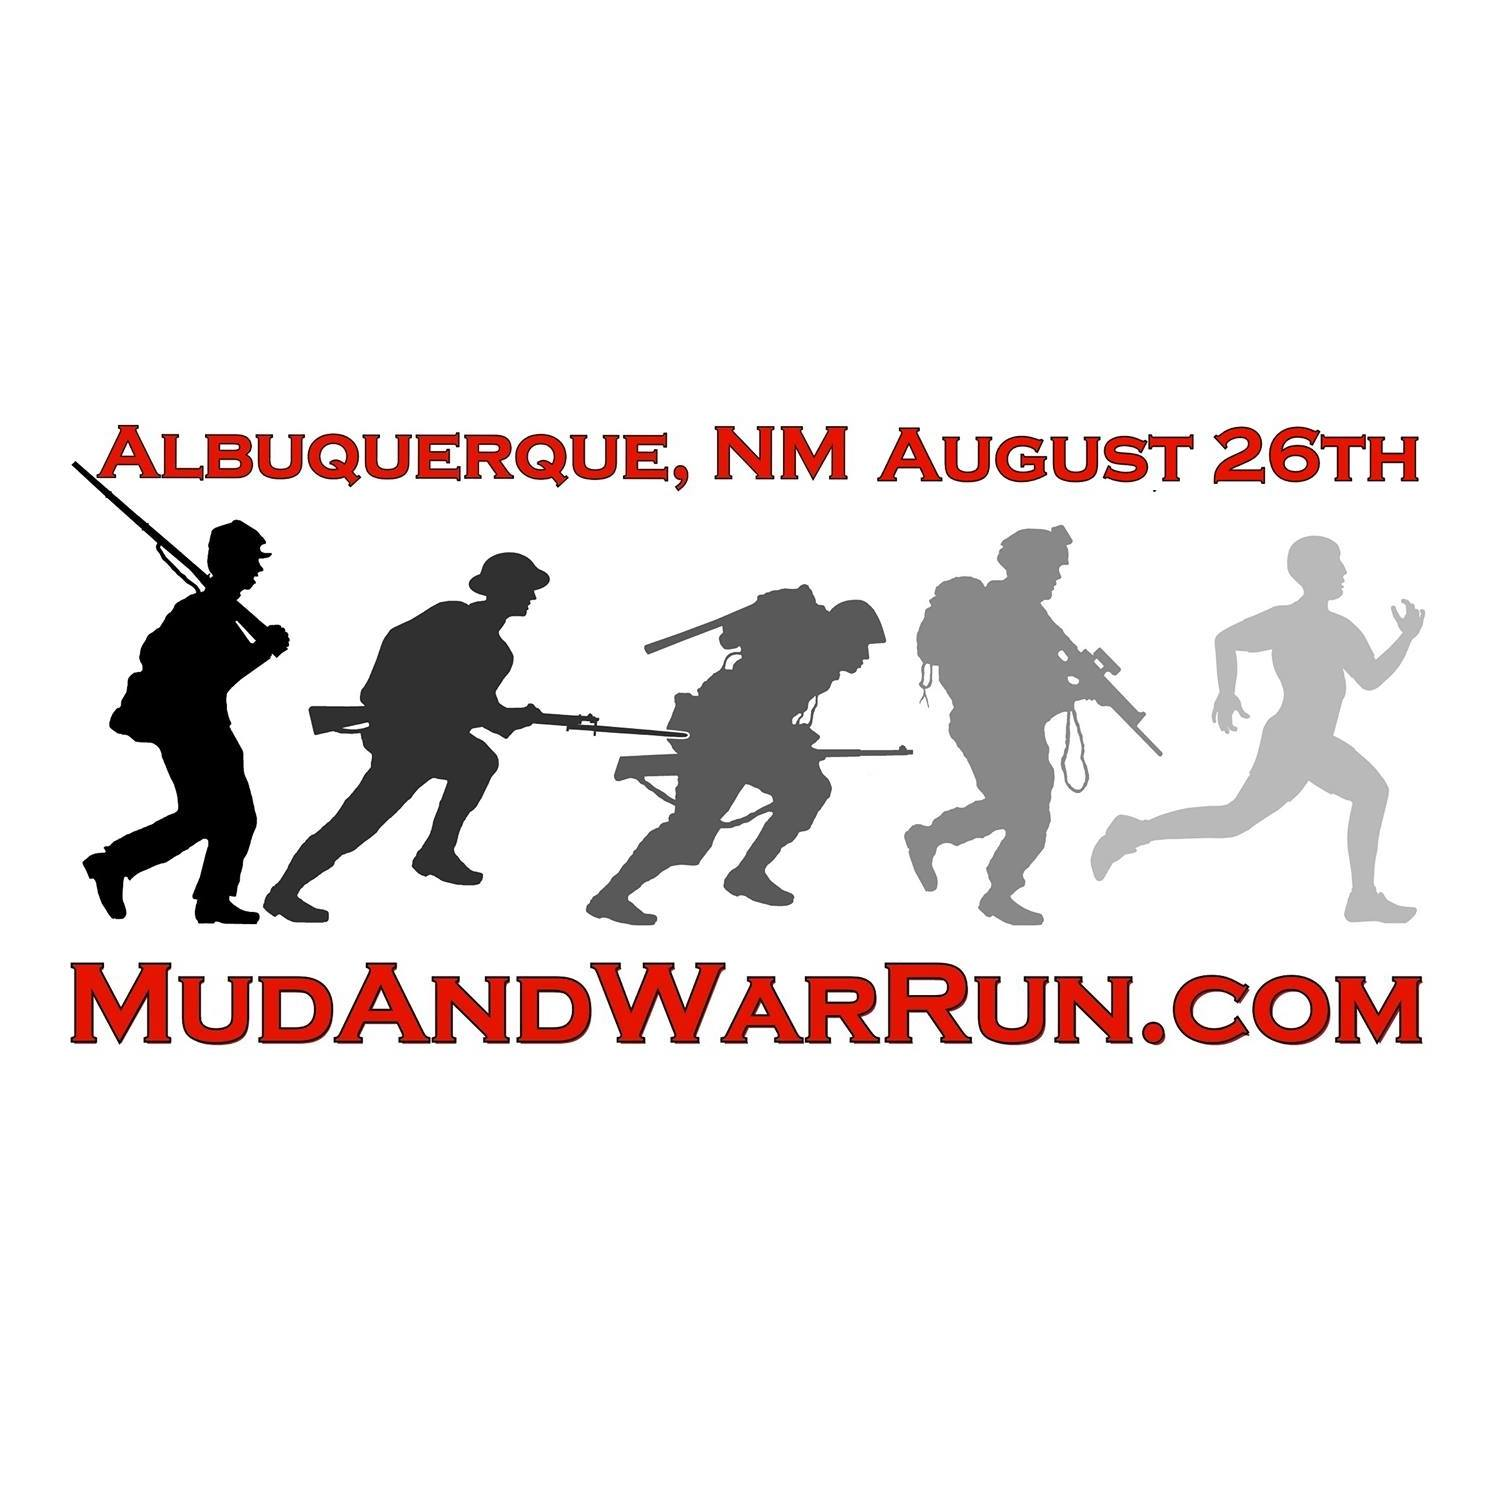 Mud And War Run